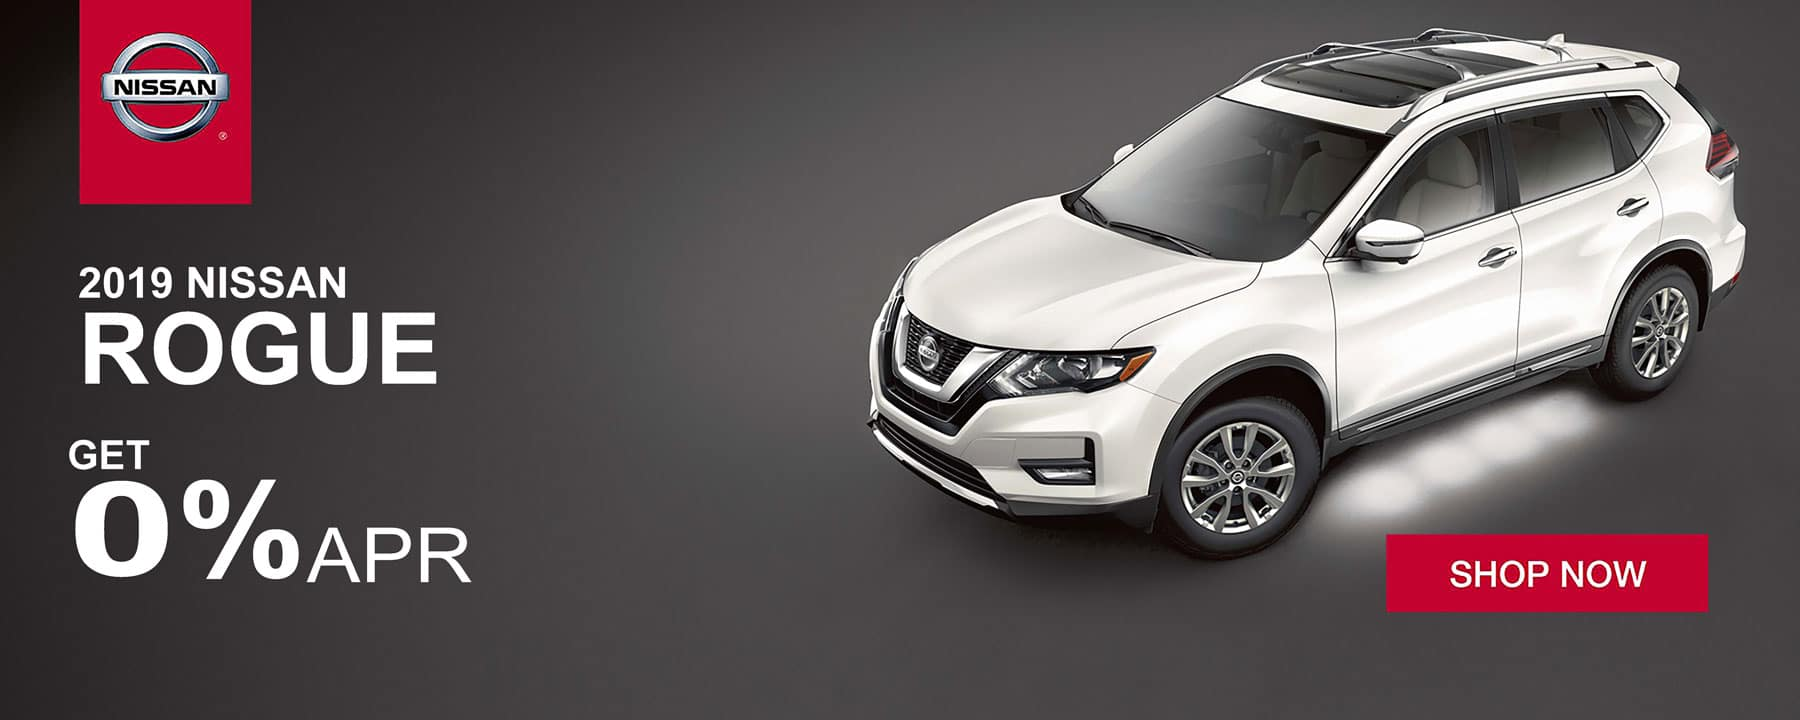 Shop the 2019 Nissan Rogue NOW at Berman Nissan of Chicago!